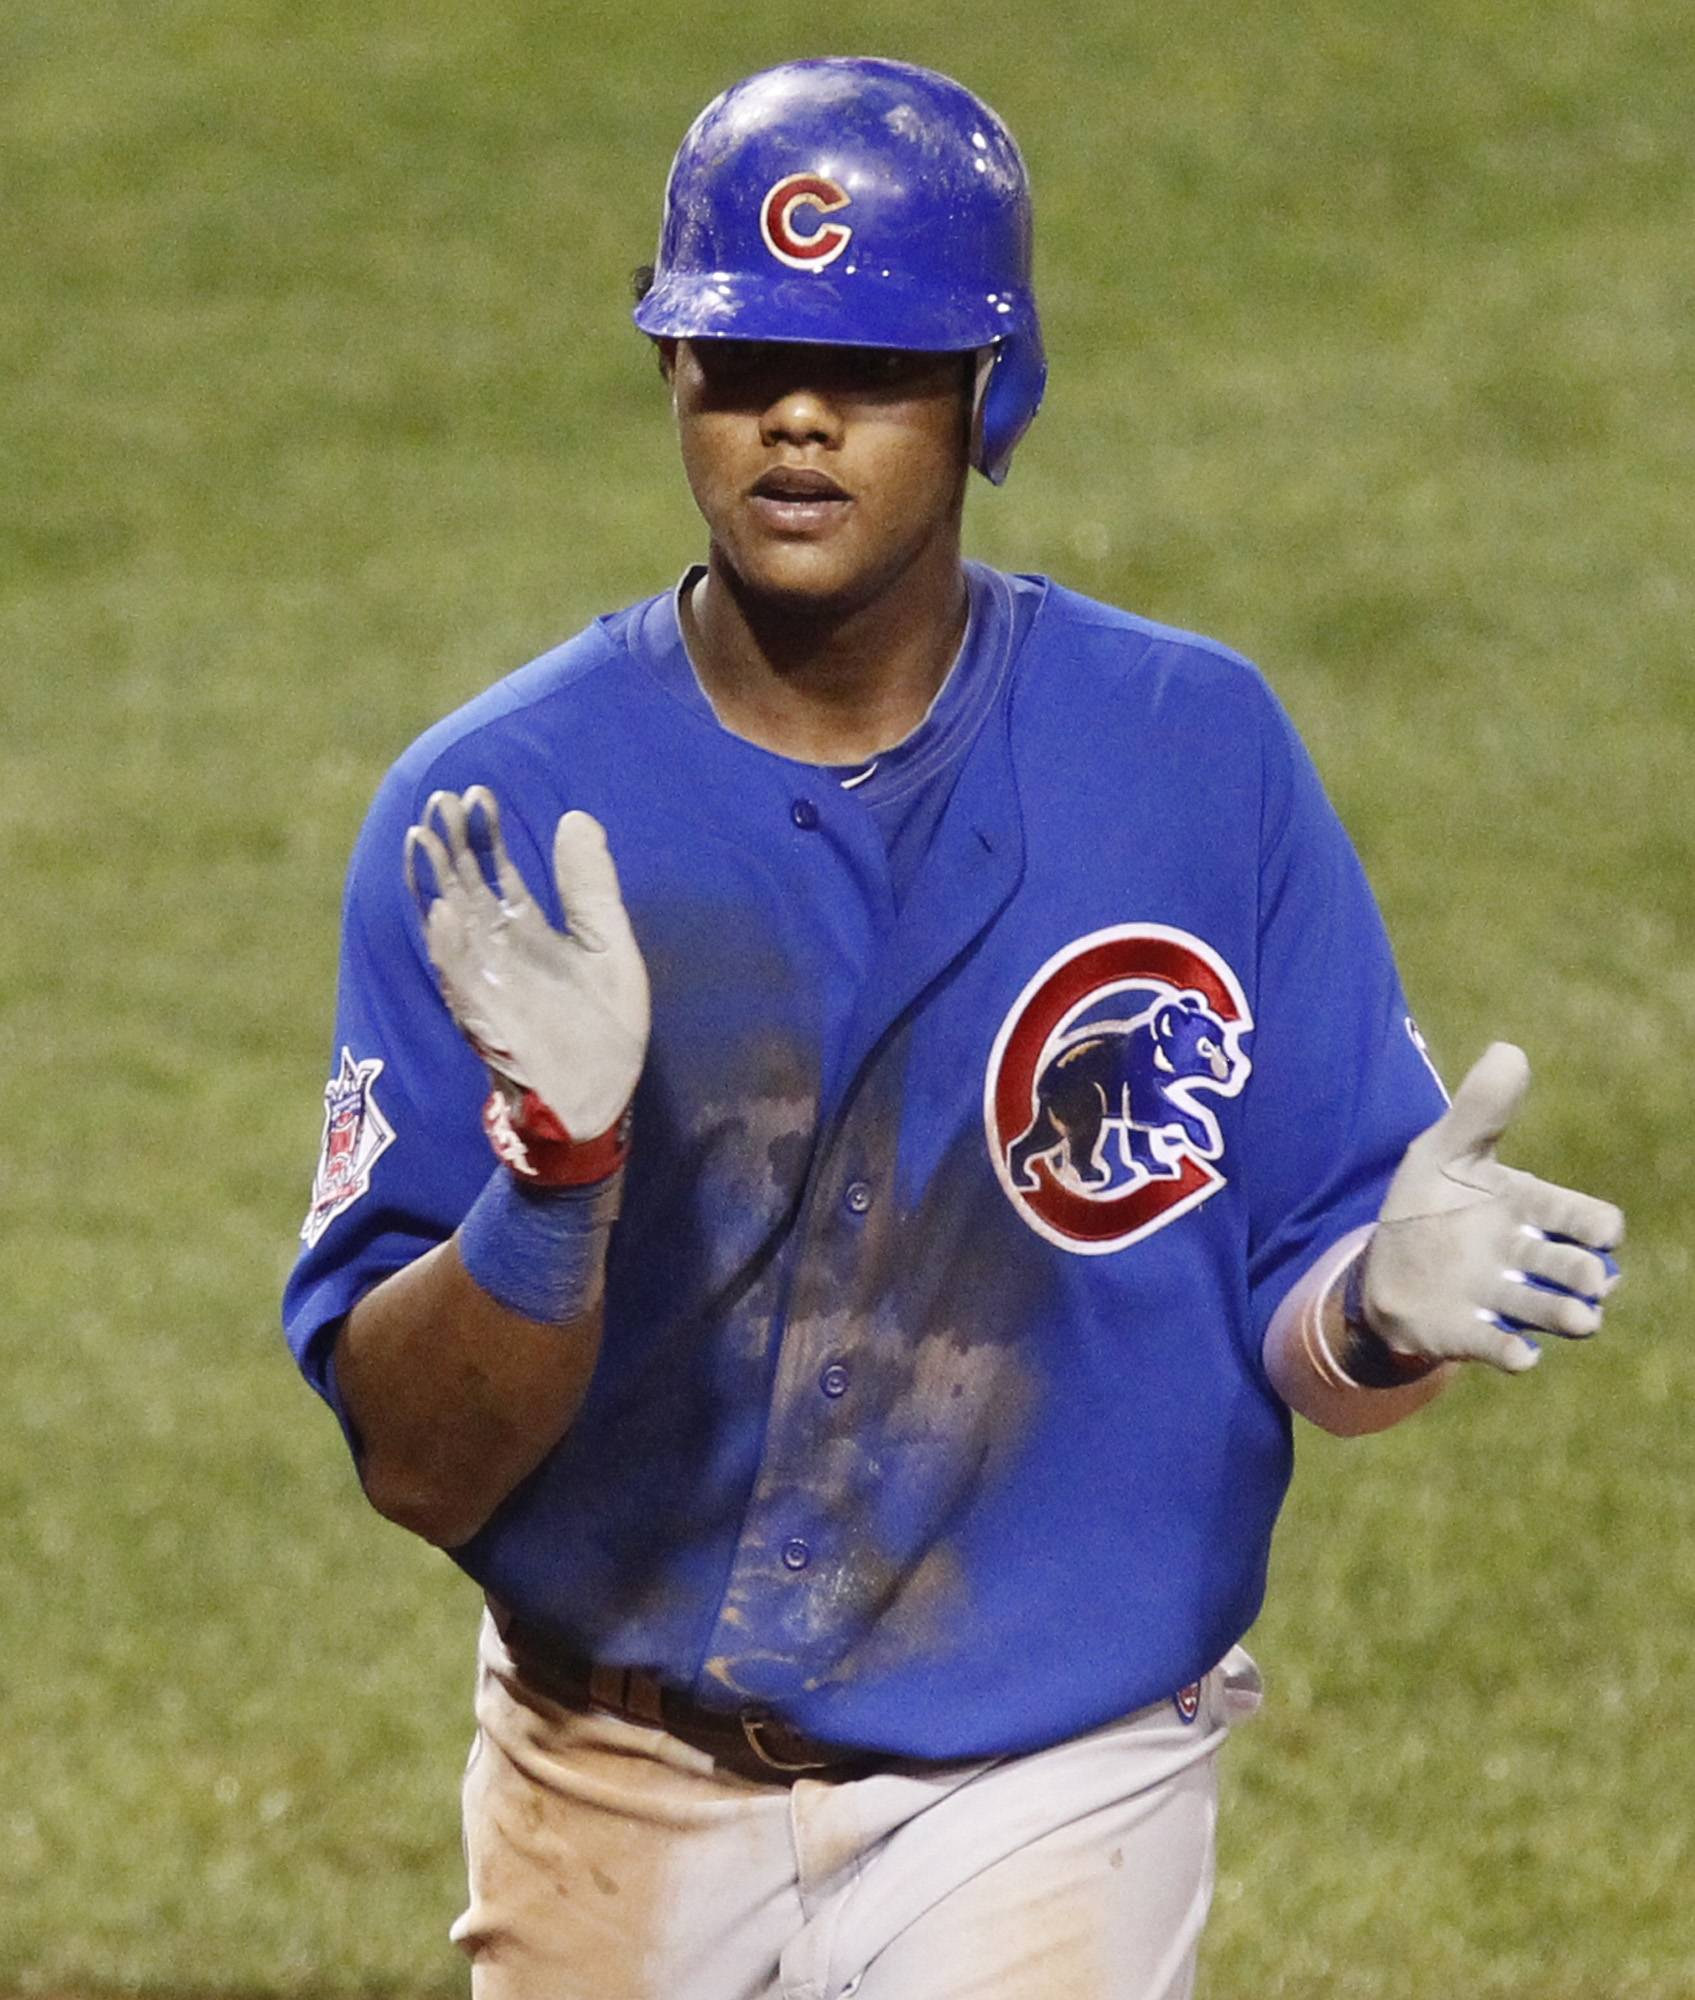 Castro homers, Garza goes 7 as Cubs top Pirates